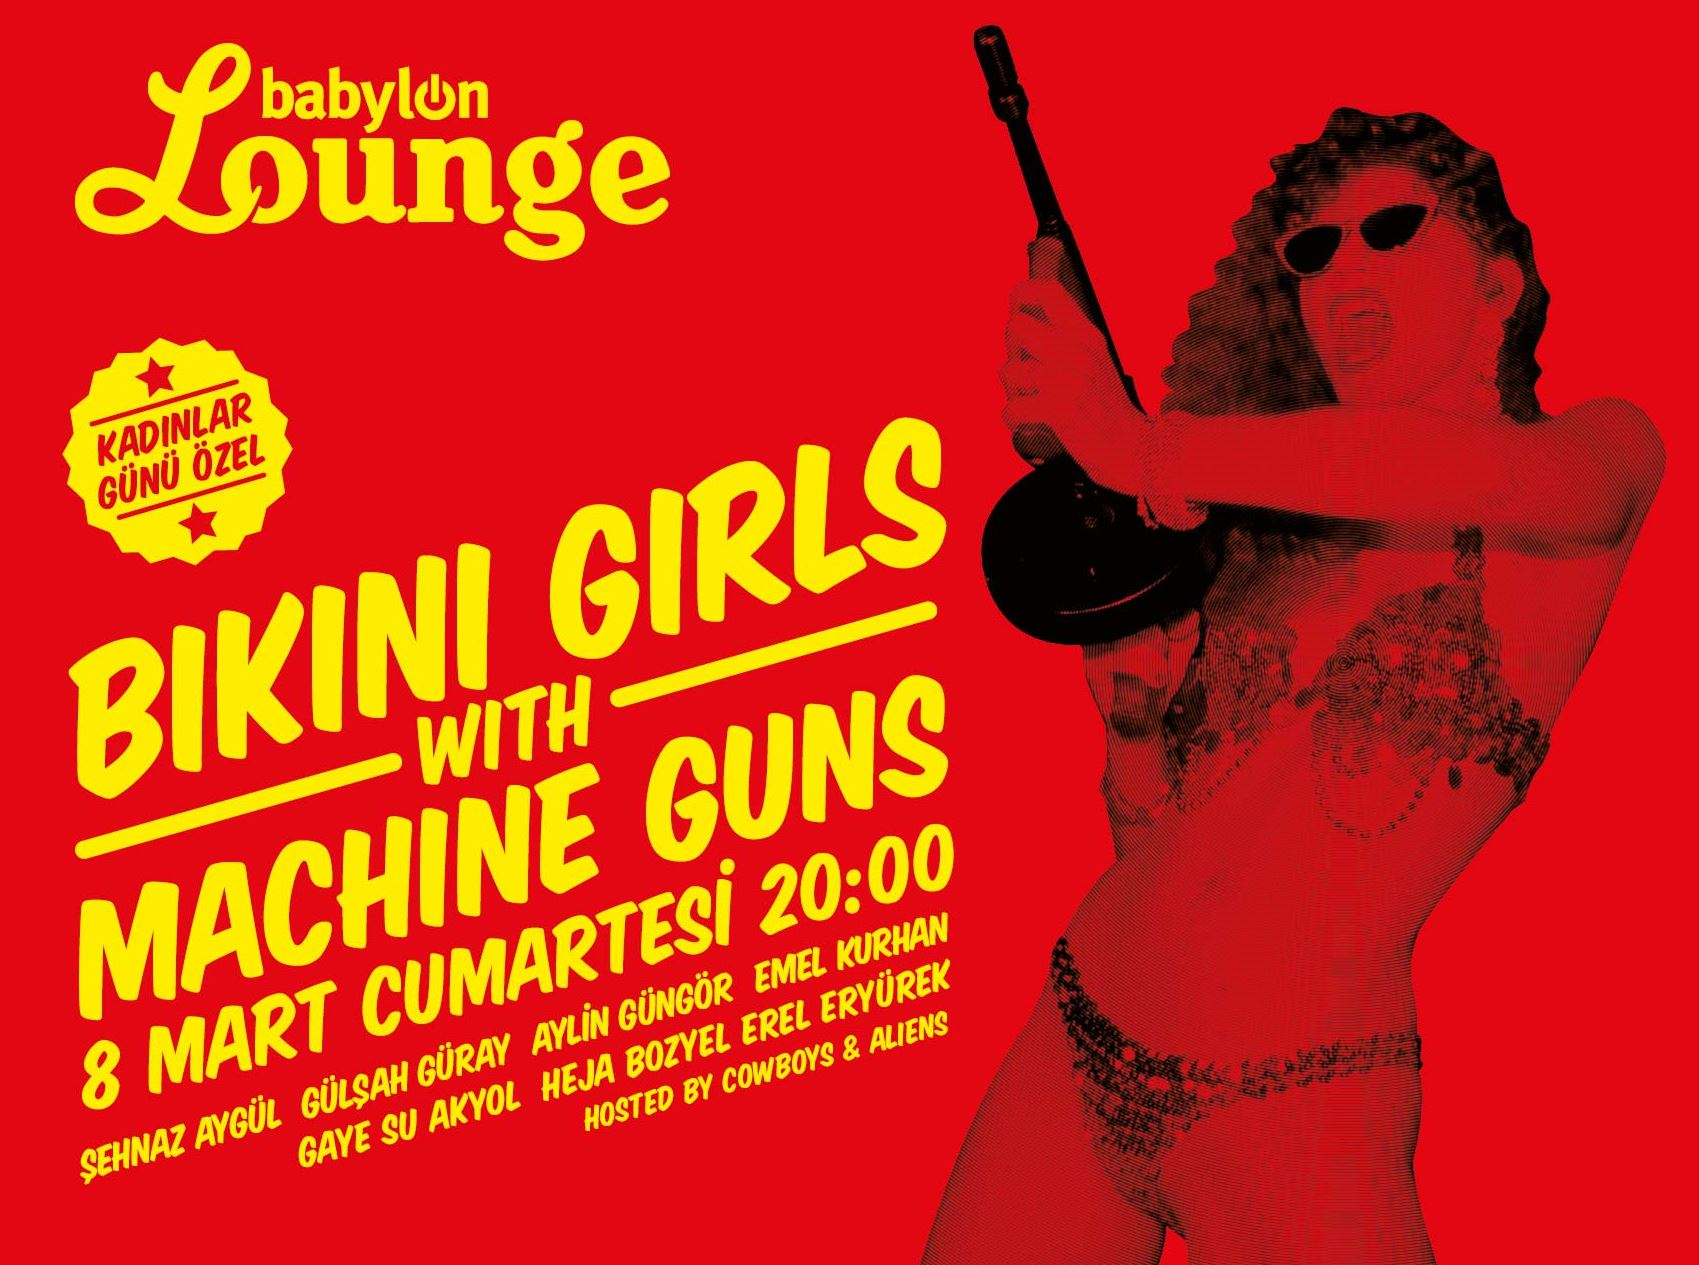 Dünya Kadınlar Günü Özel: Bikini Girls With Machine Guns hosted by Cowboys & Aliens